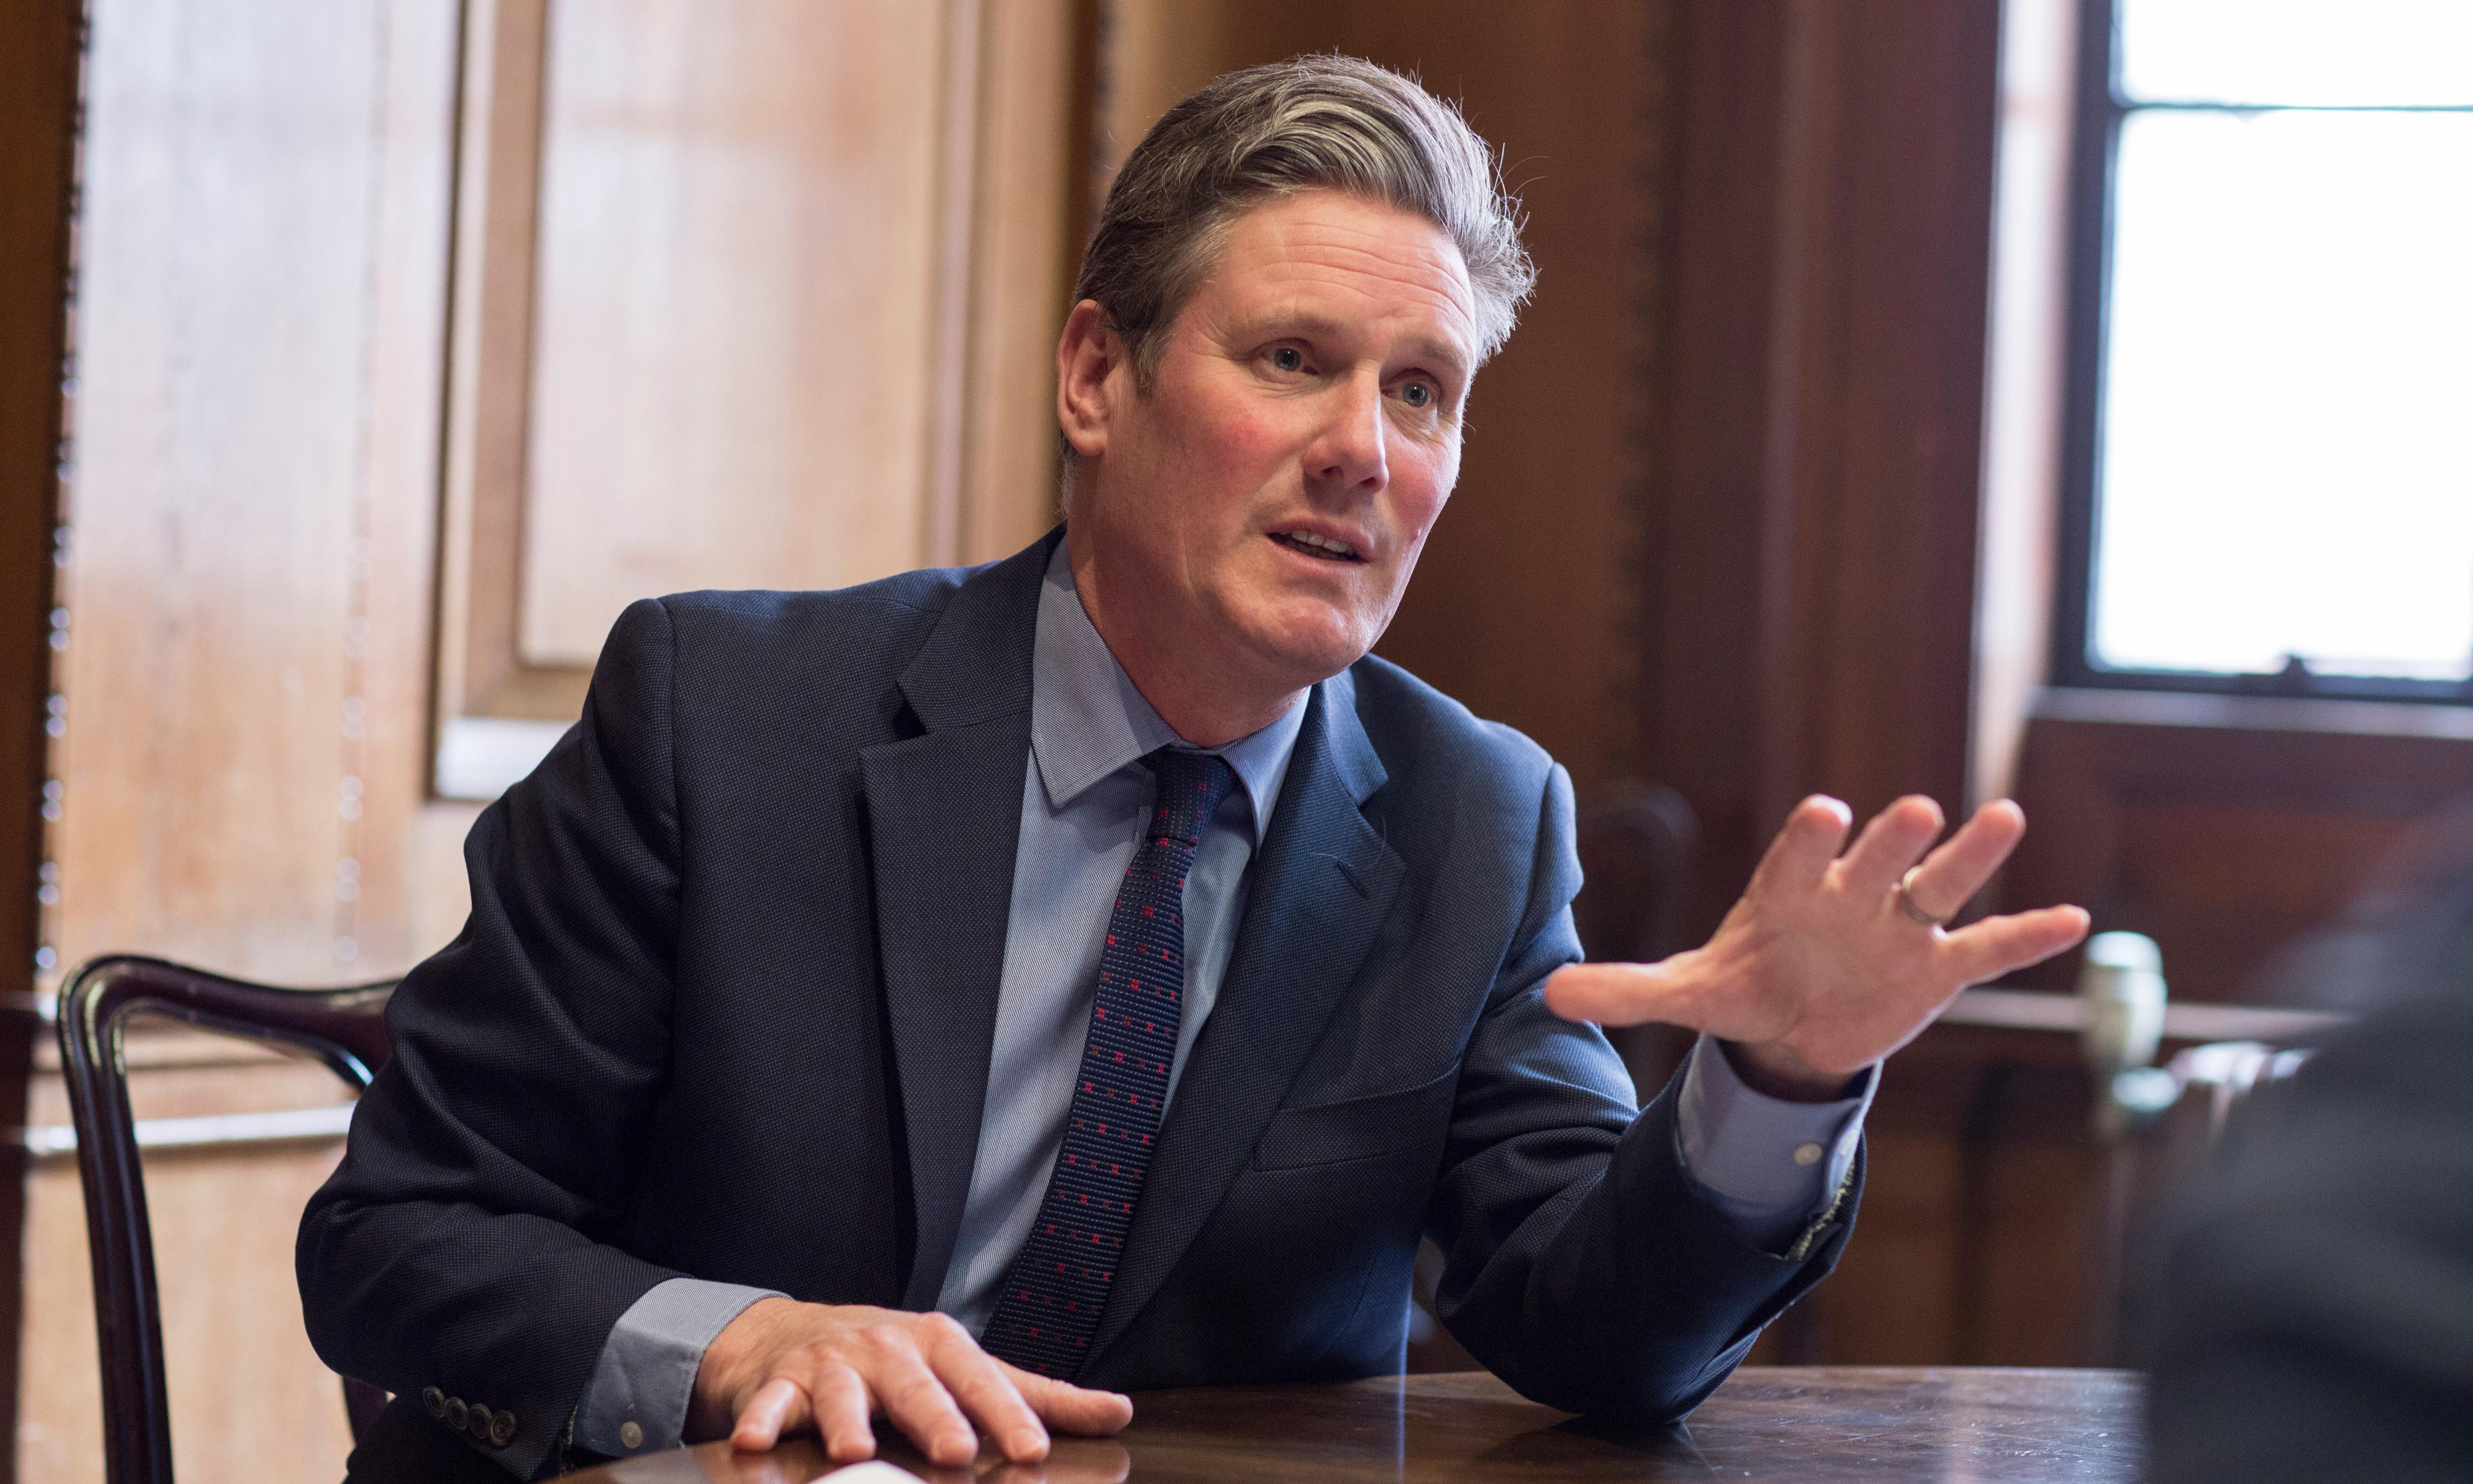 Starmer: PM is running down clock on Brexit so MPs get binary choice